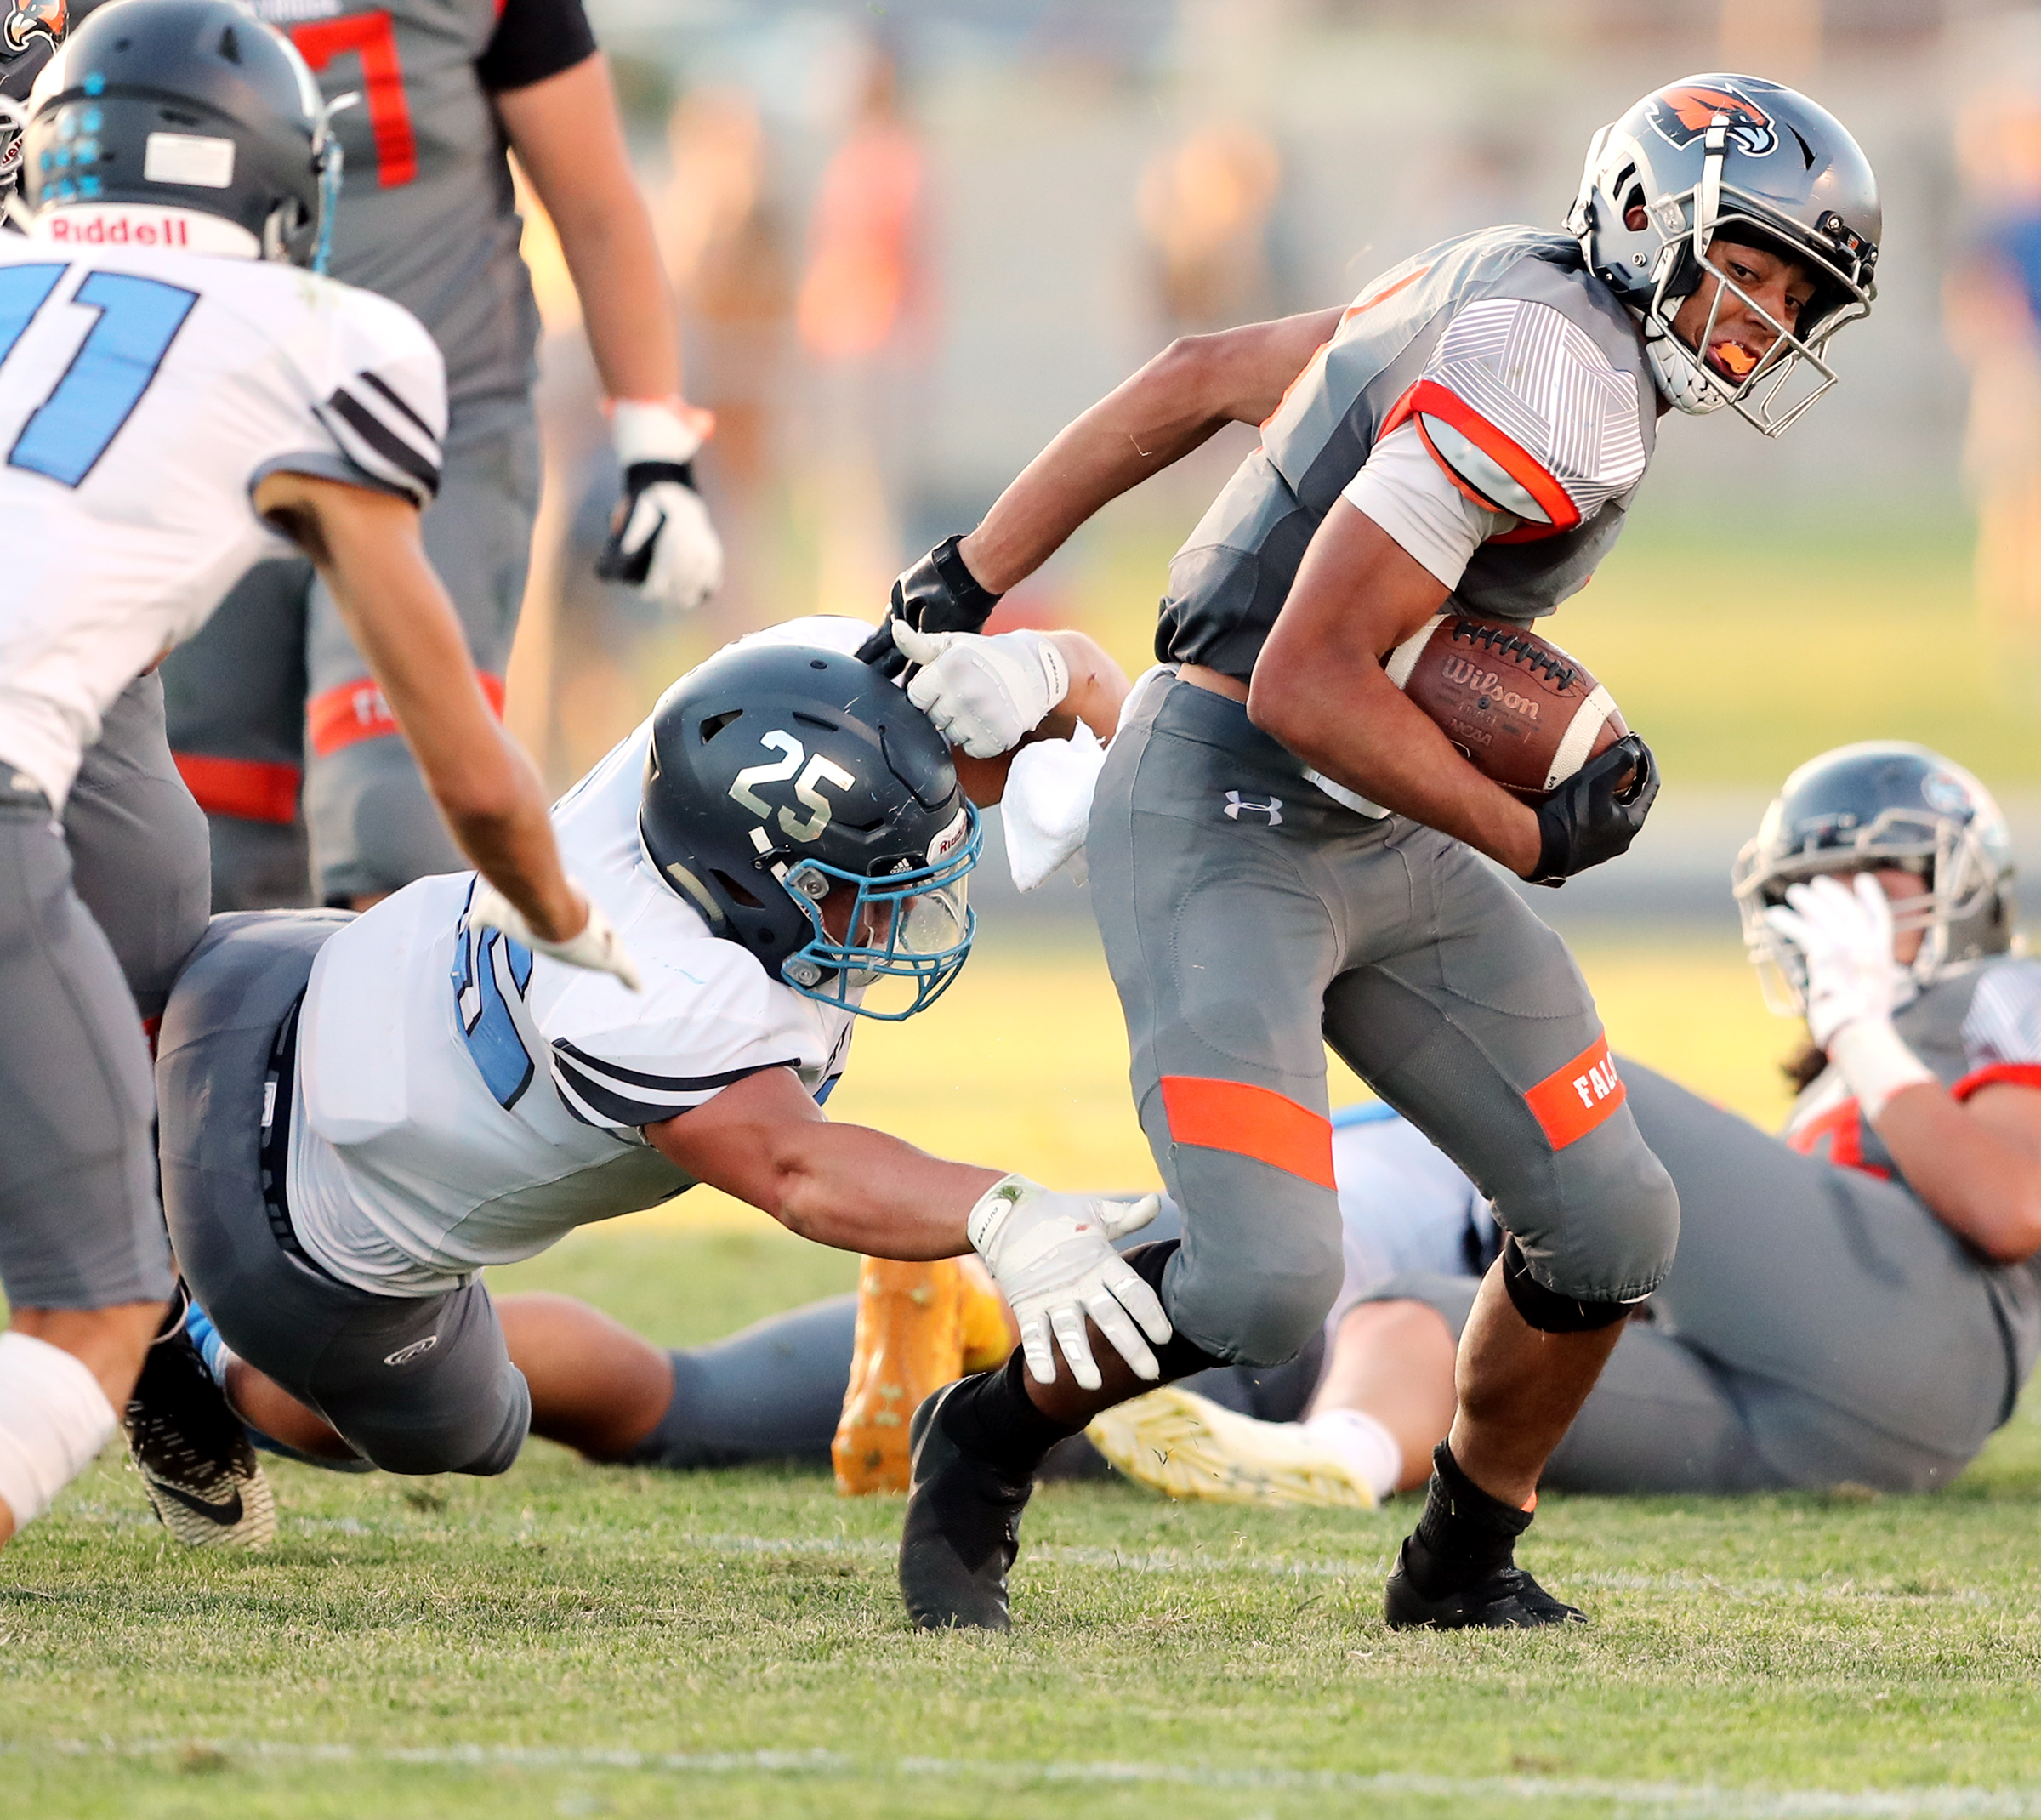 Action in the Skyridge and Sky View high school football game in Lehi on Friday, Aug. 23, 2019. Skyridge won 18-10.